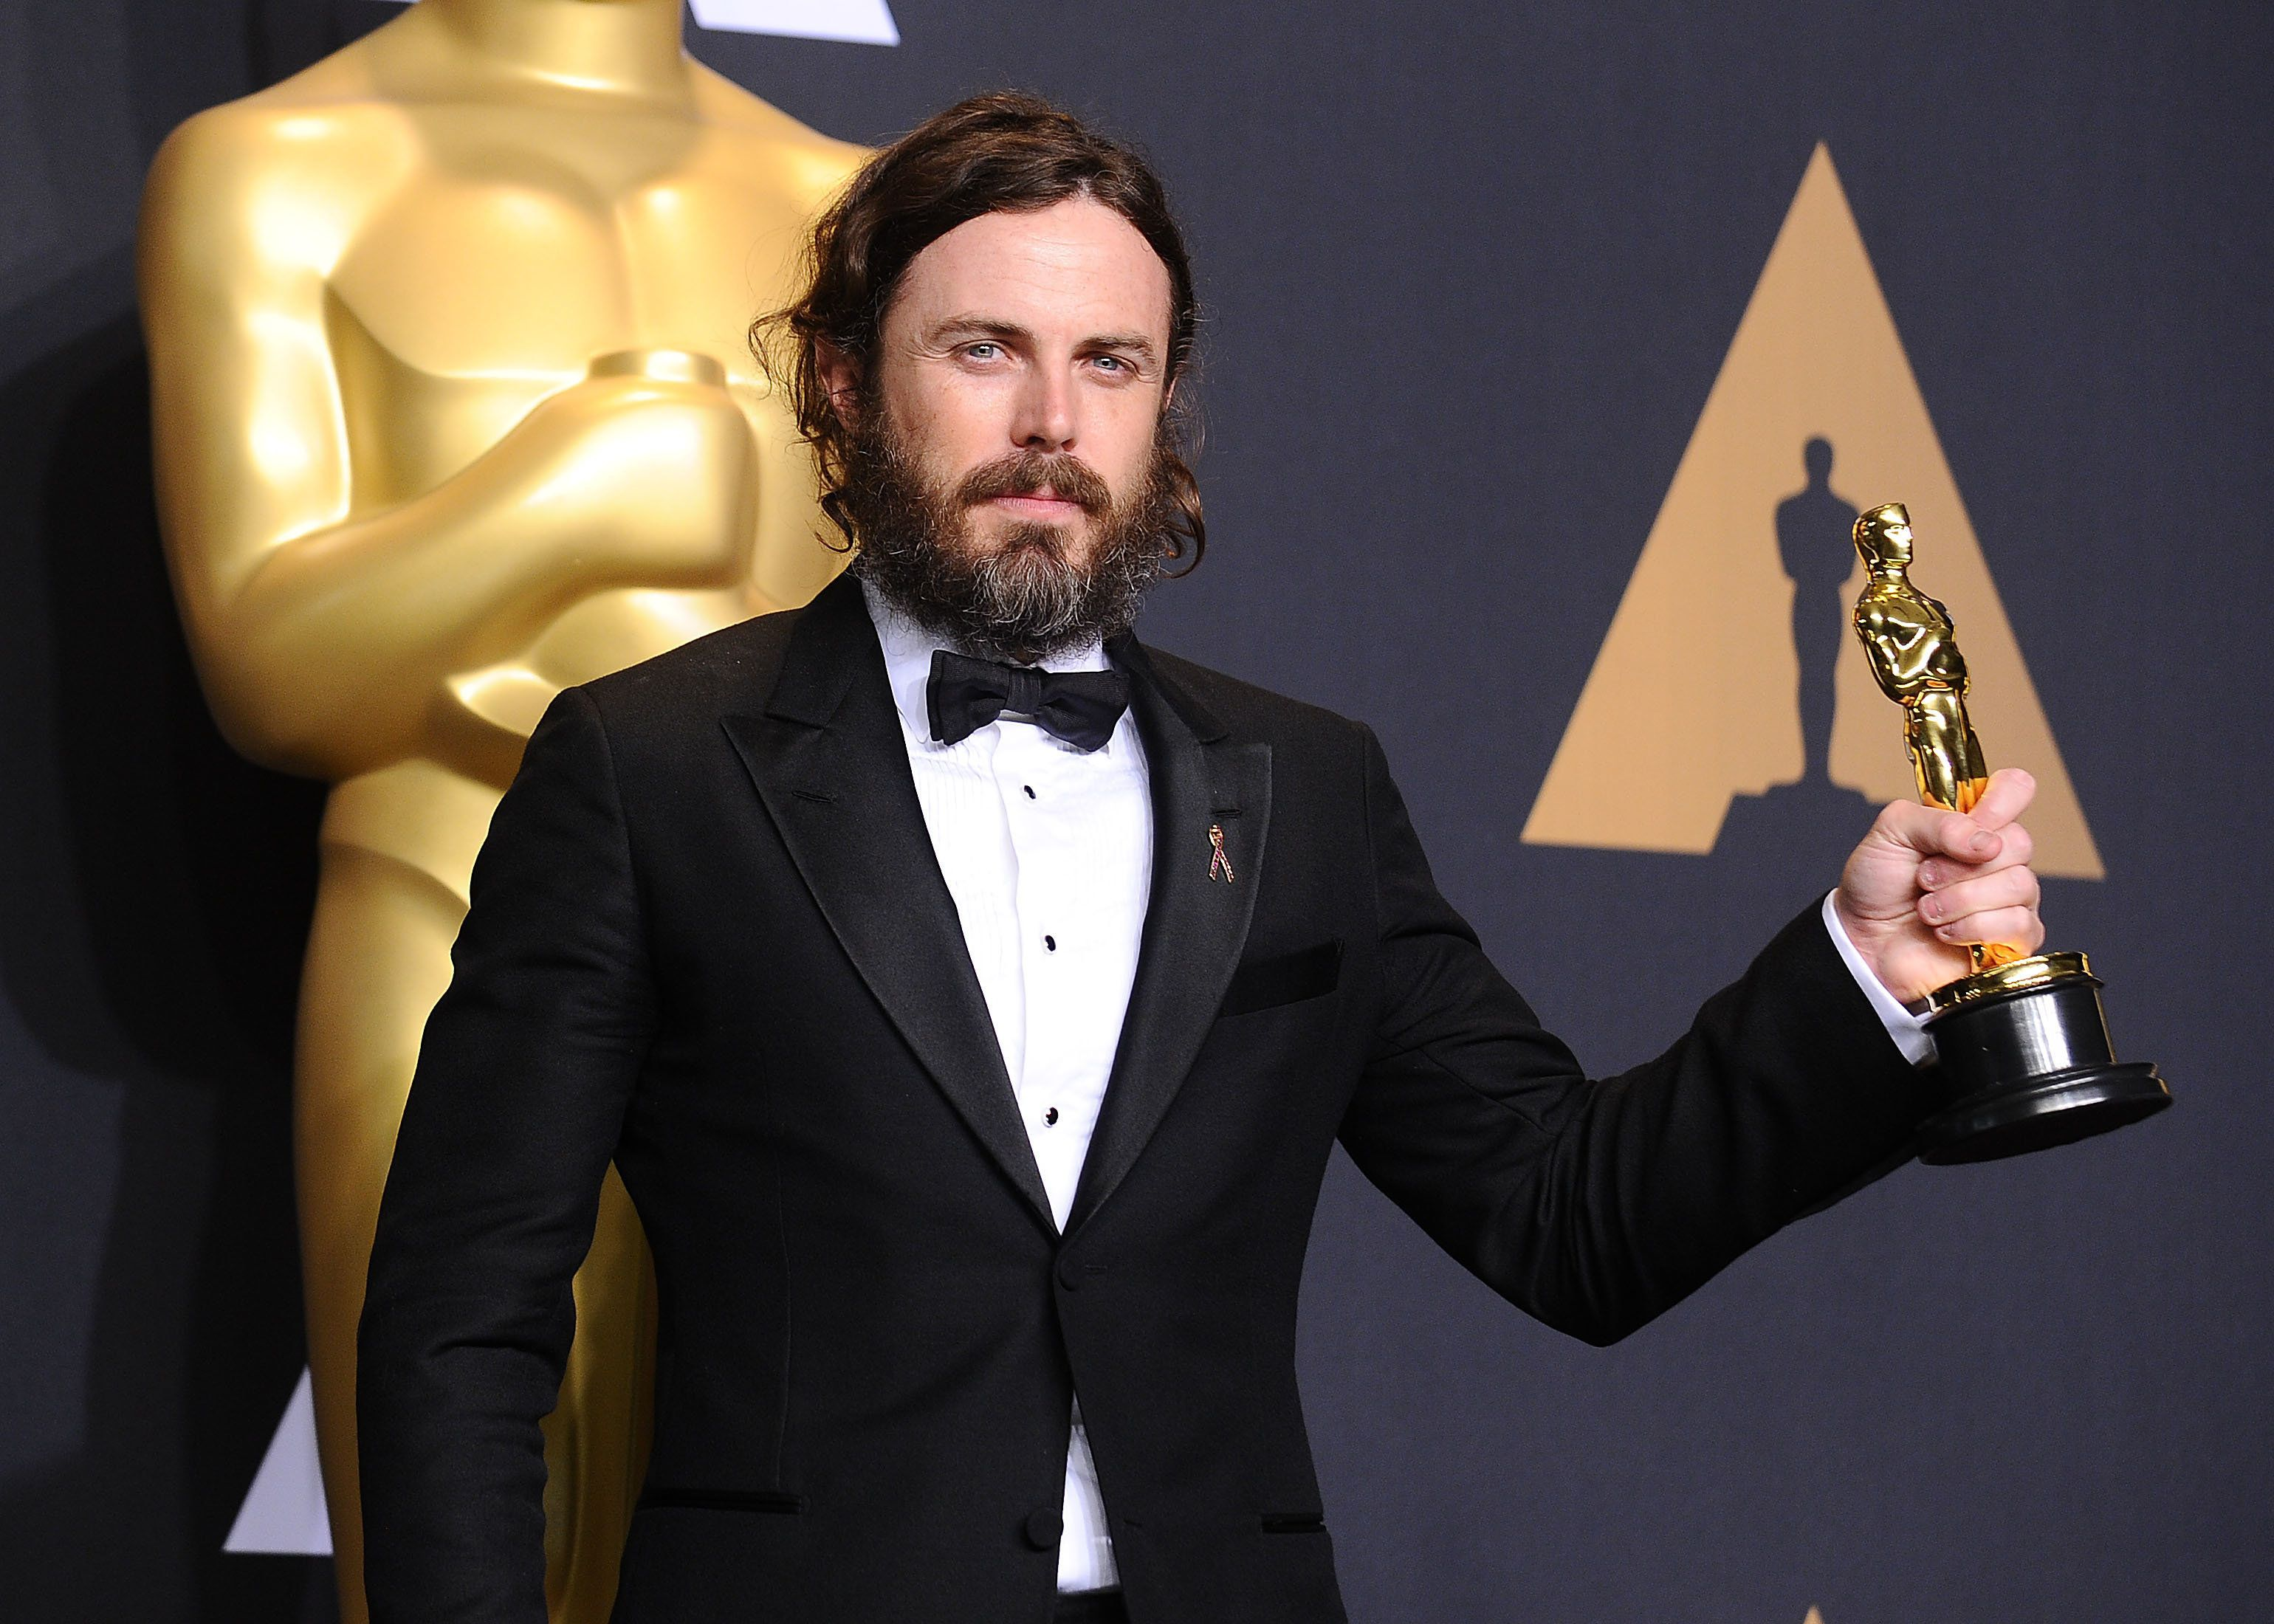 Casey Affleck Voices Regrets On His Past Conduct, Vows To Support Women